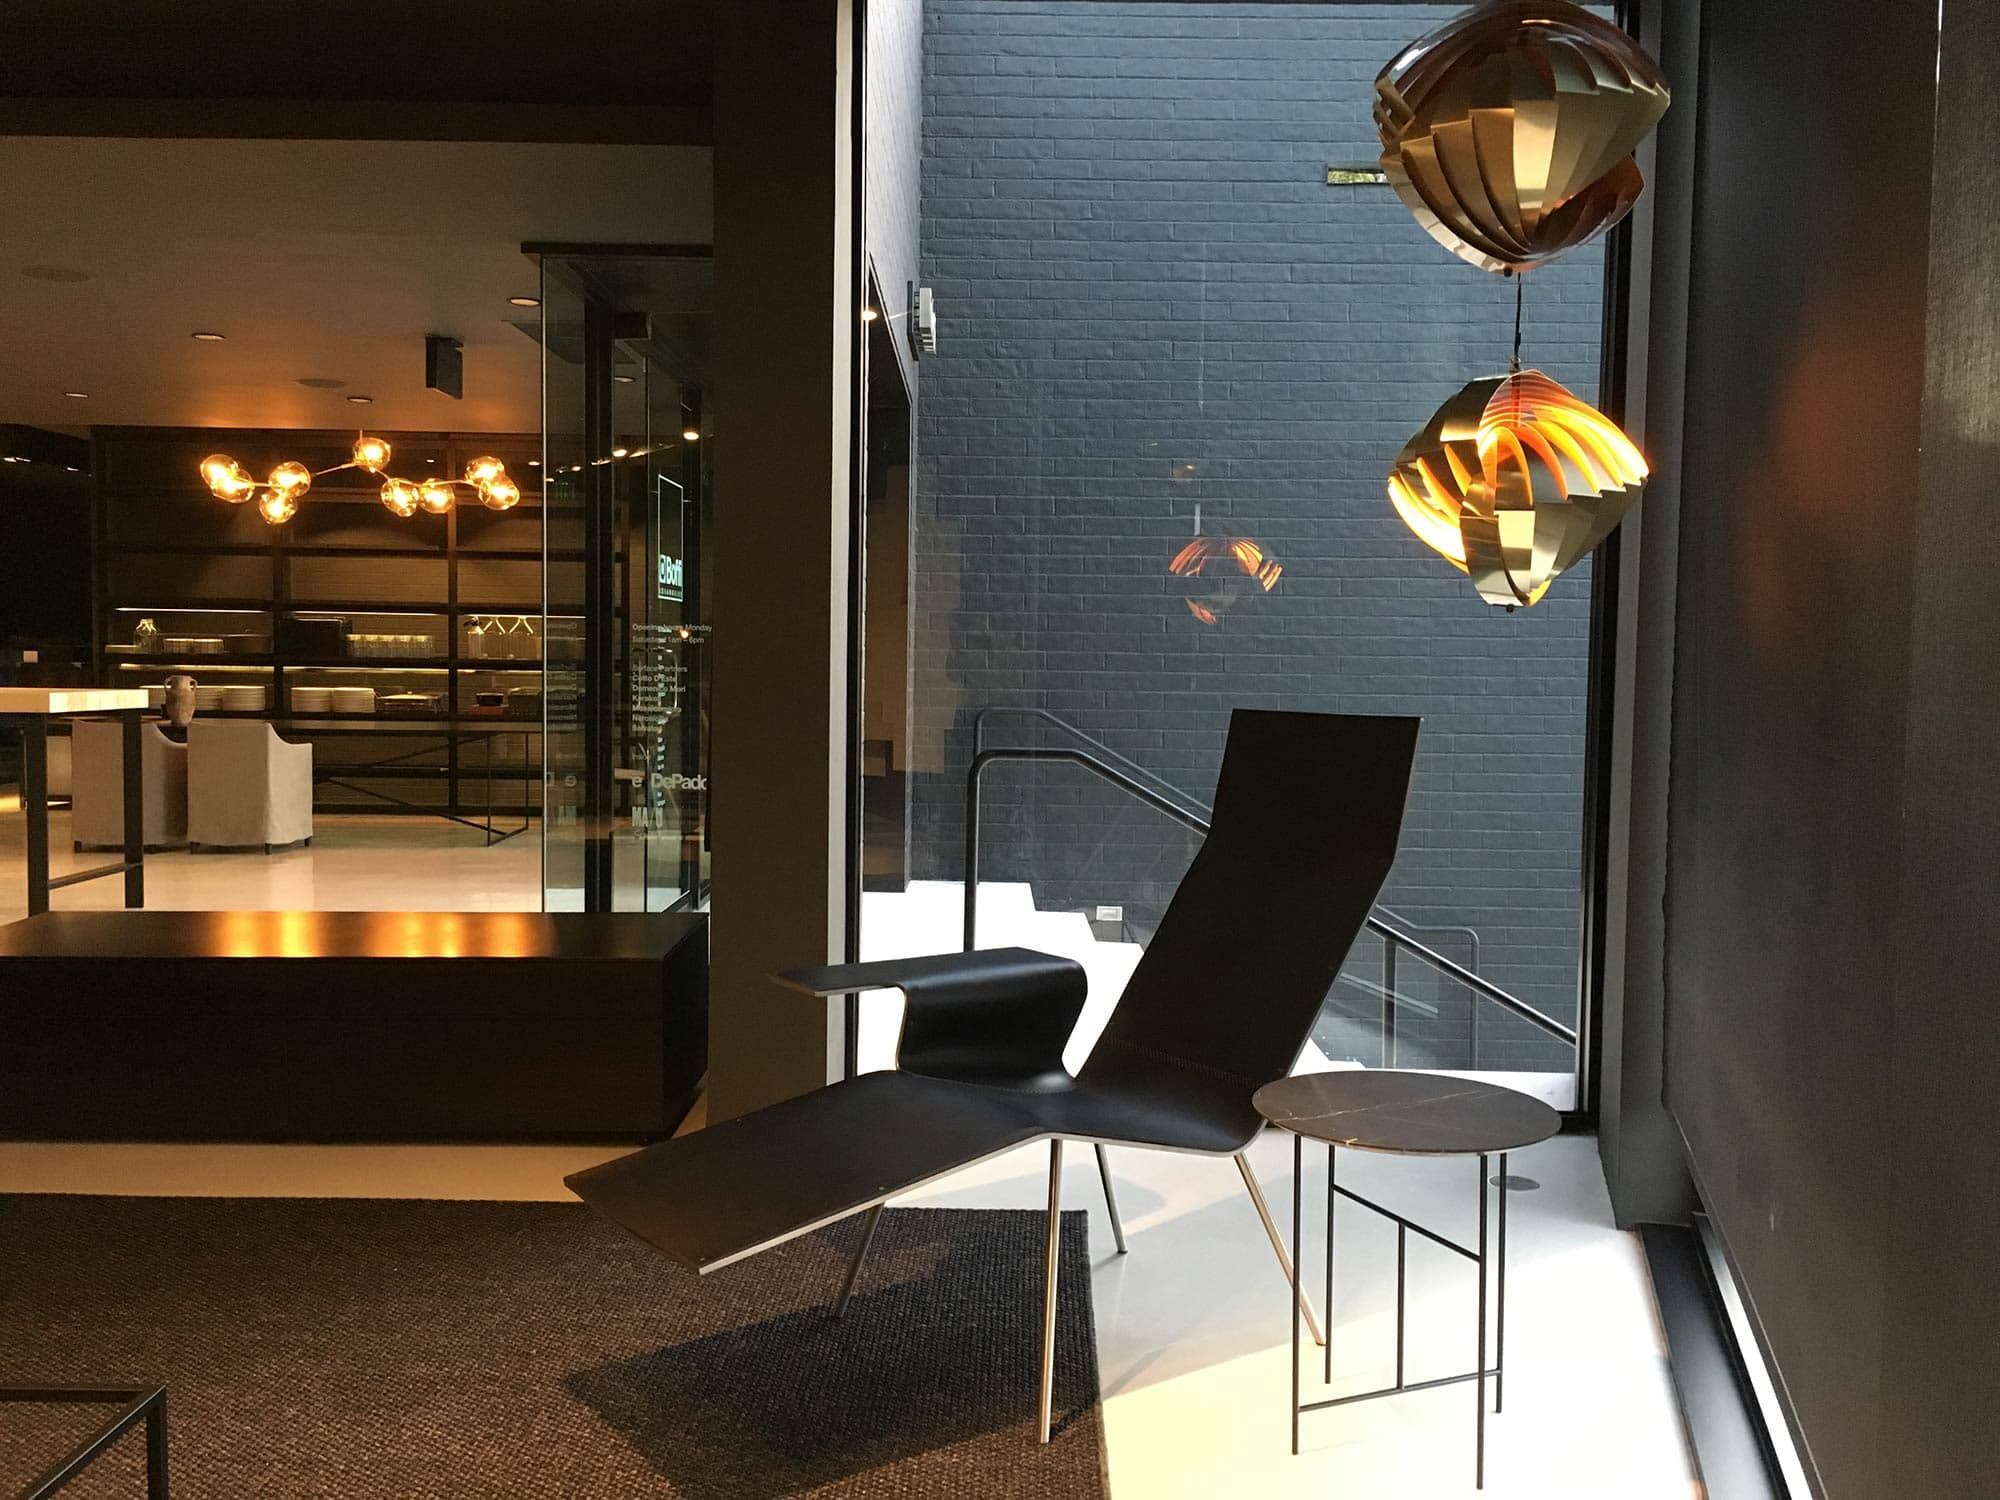 The Boffi Los Angeles showroom changes its display.